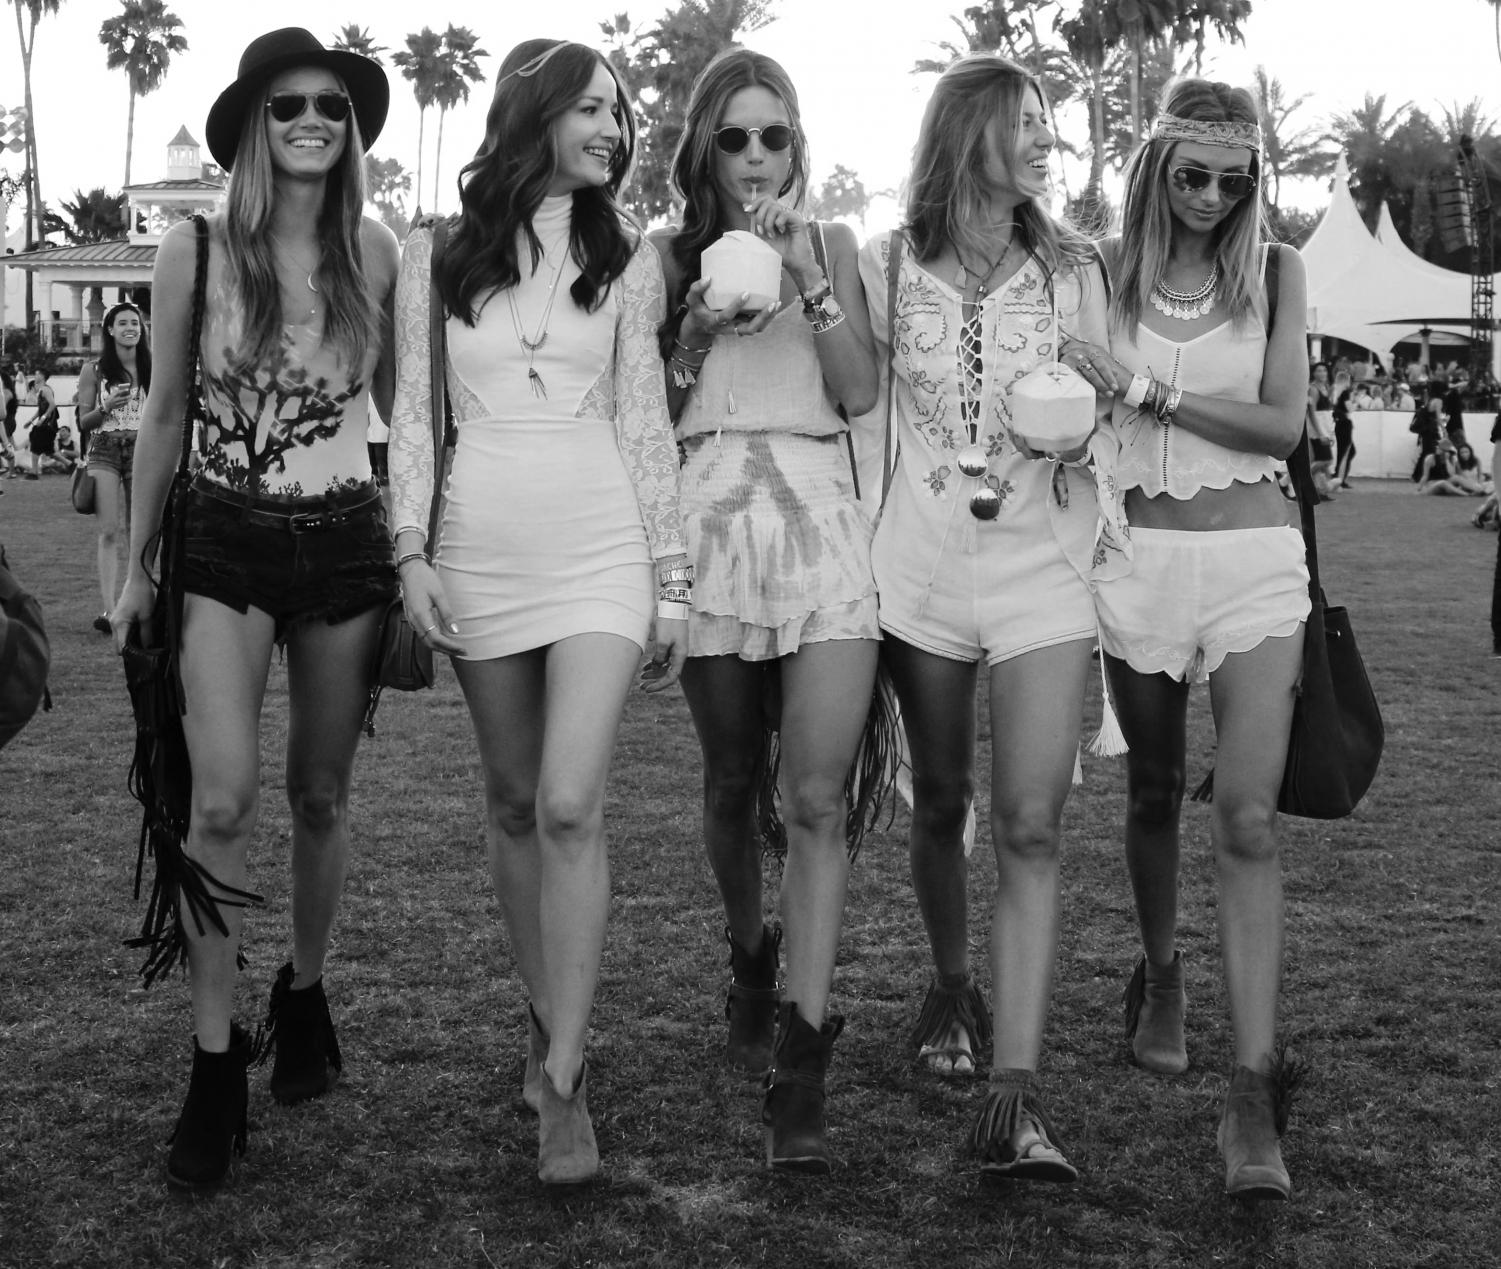 Coachella was the kick-off to the festival season, and many people took to celebrities for their own inspiration for festivals such as Governor's Ball.